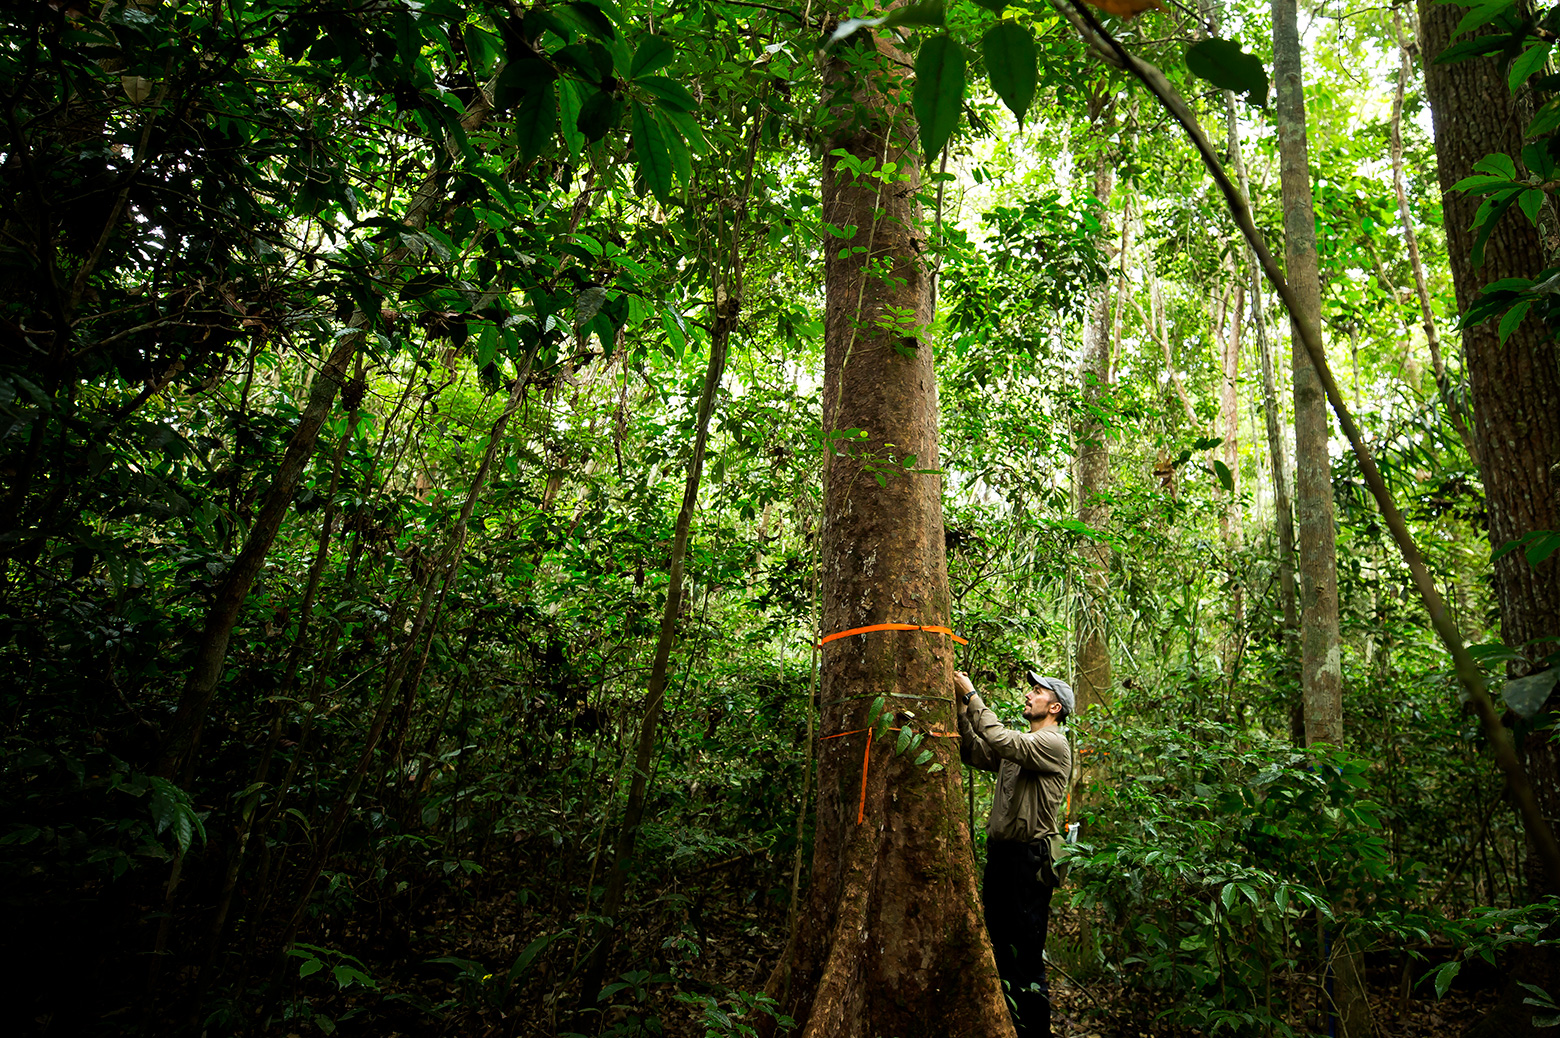 Ivanov checking sensors in the rainforest